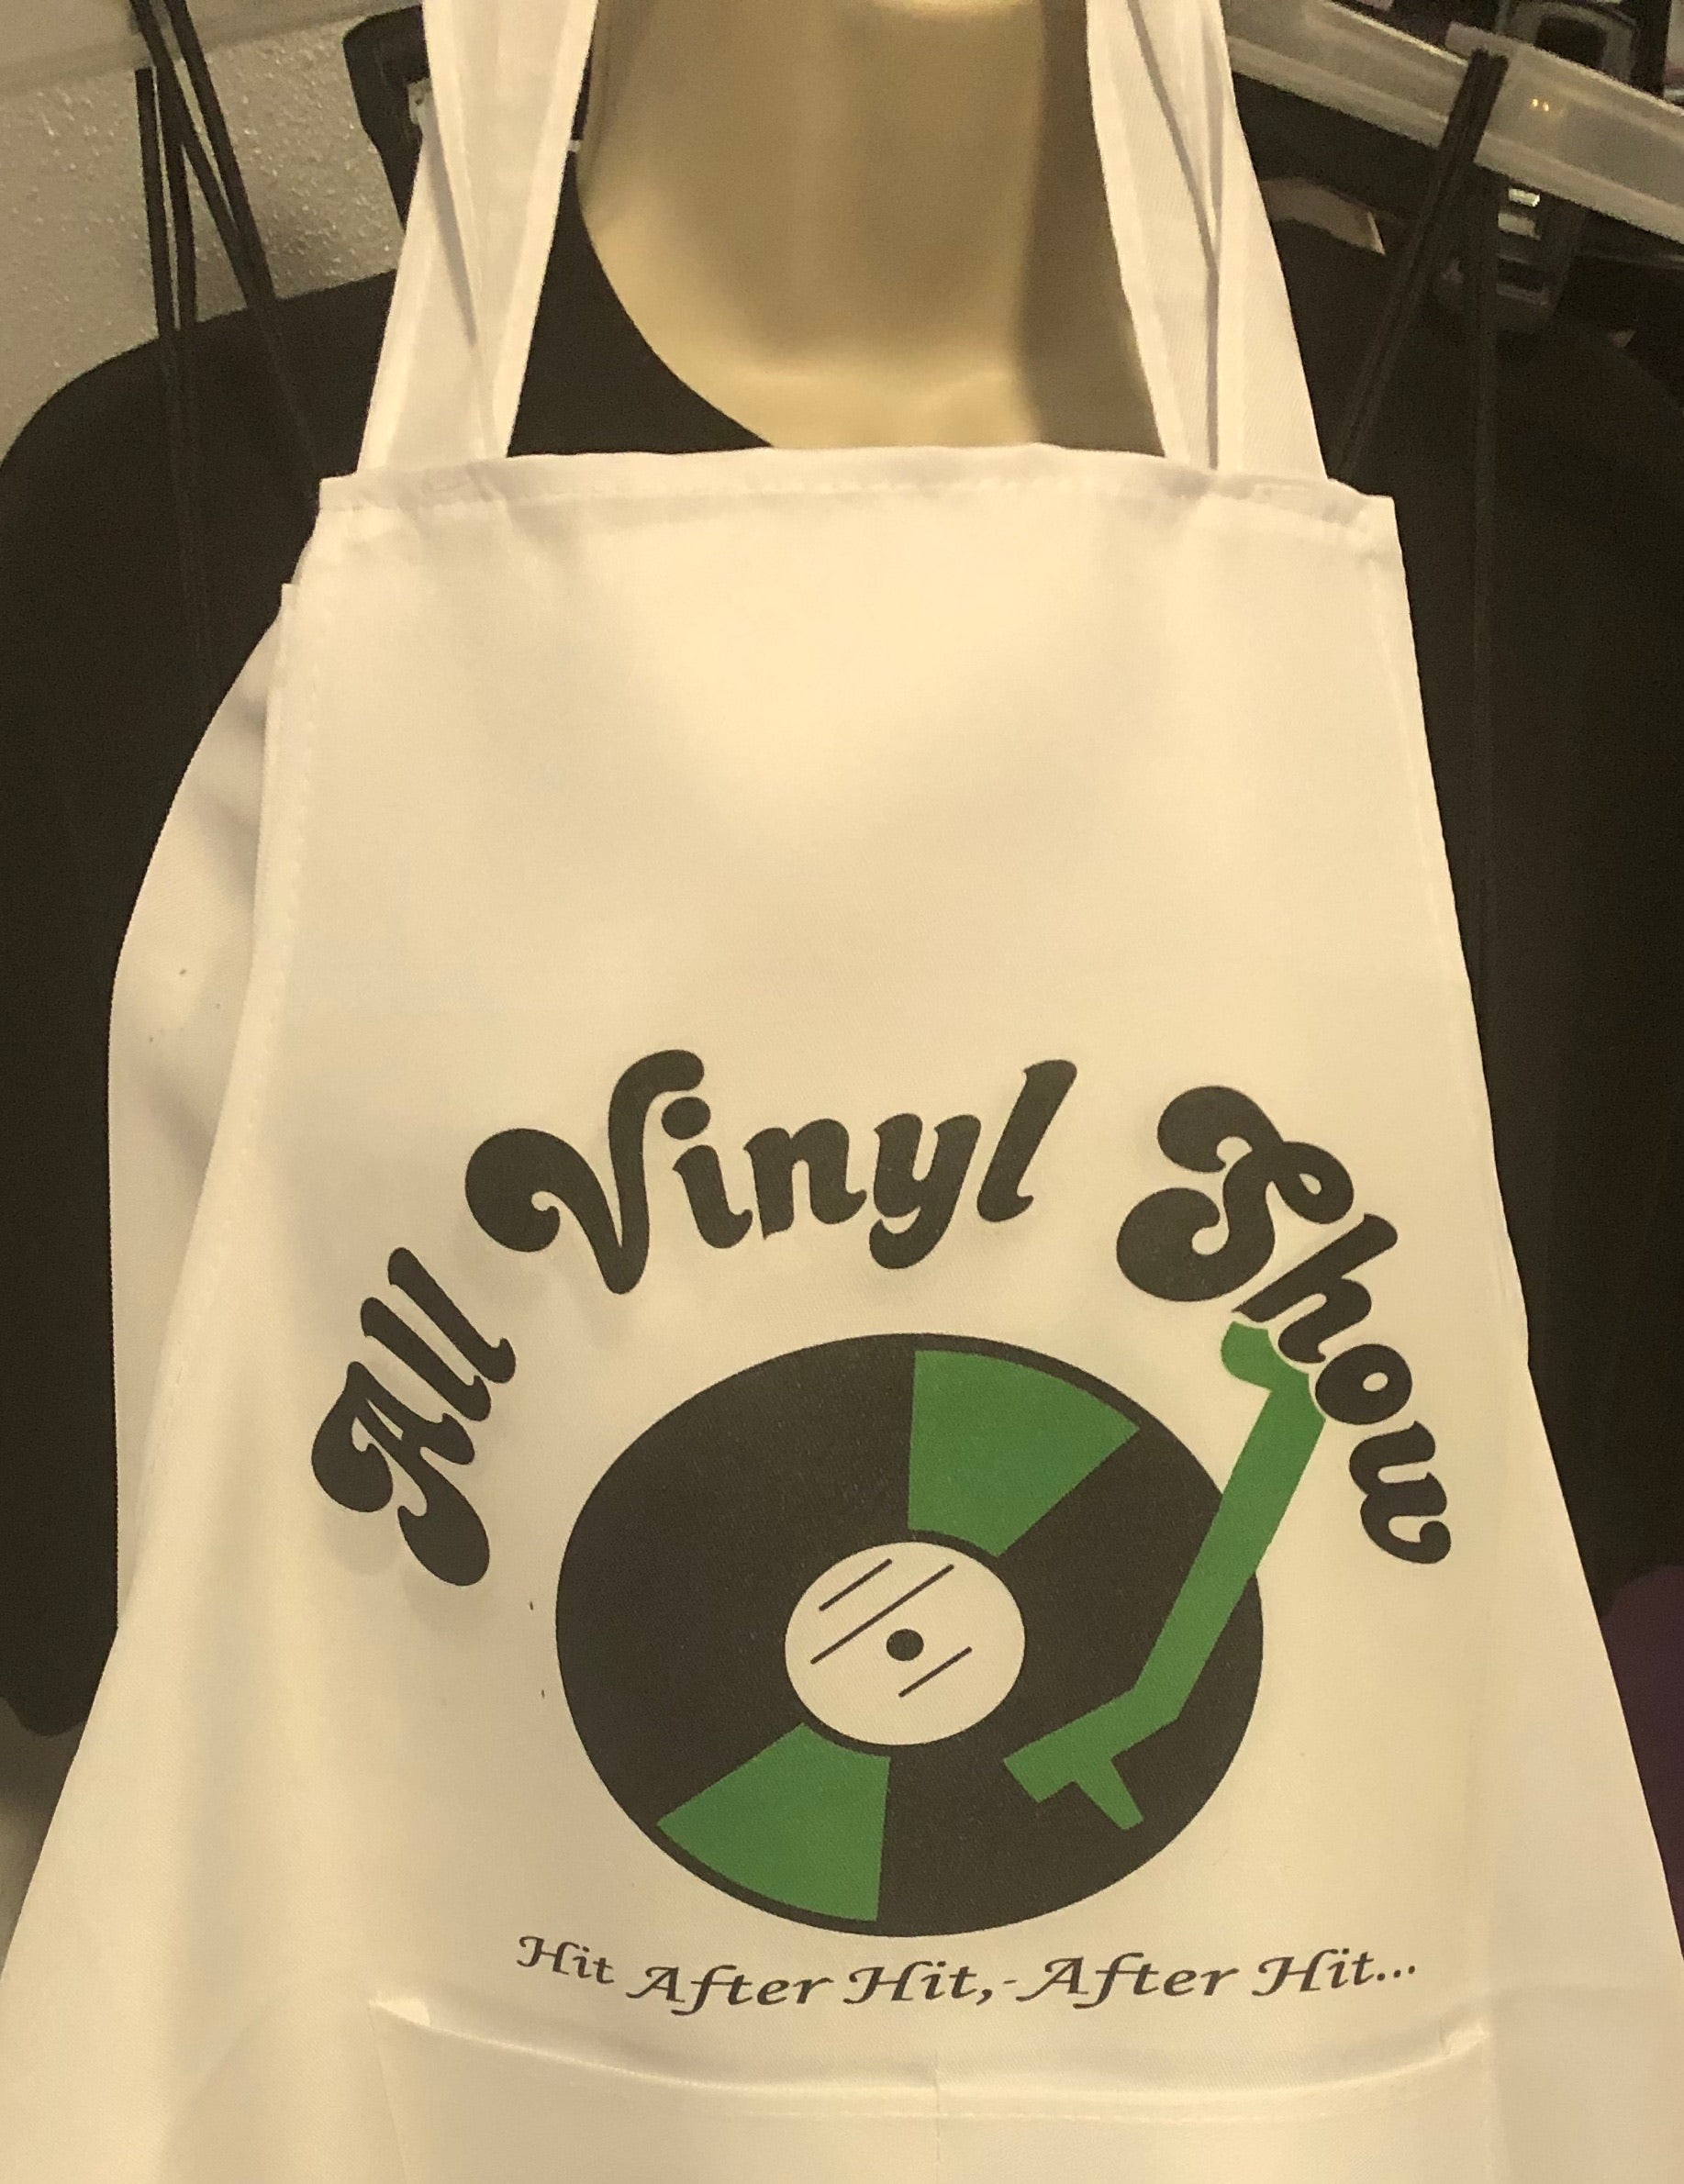 All Vinyl Show Aprons Personalized